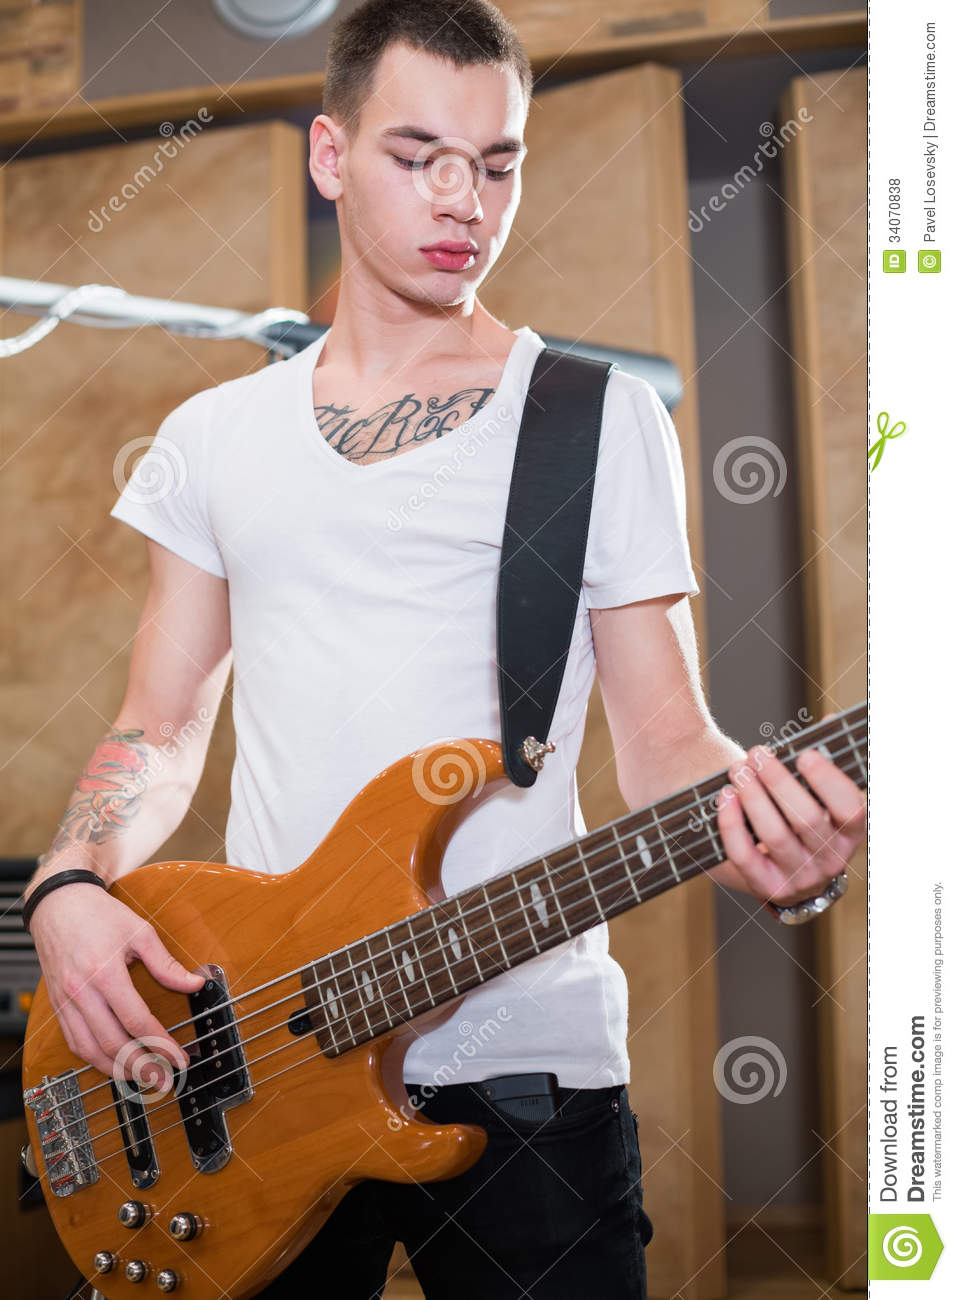 Bass player standing with his guitar